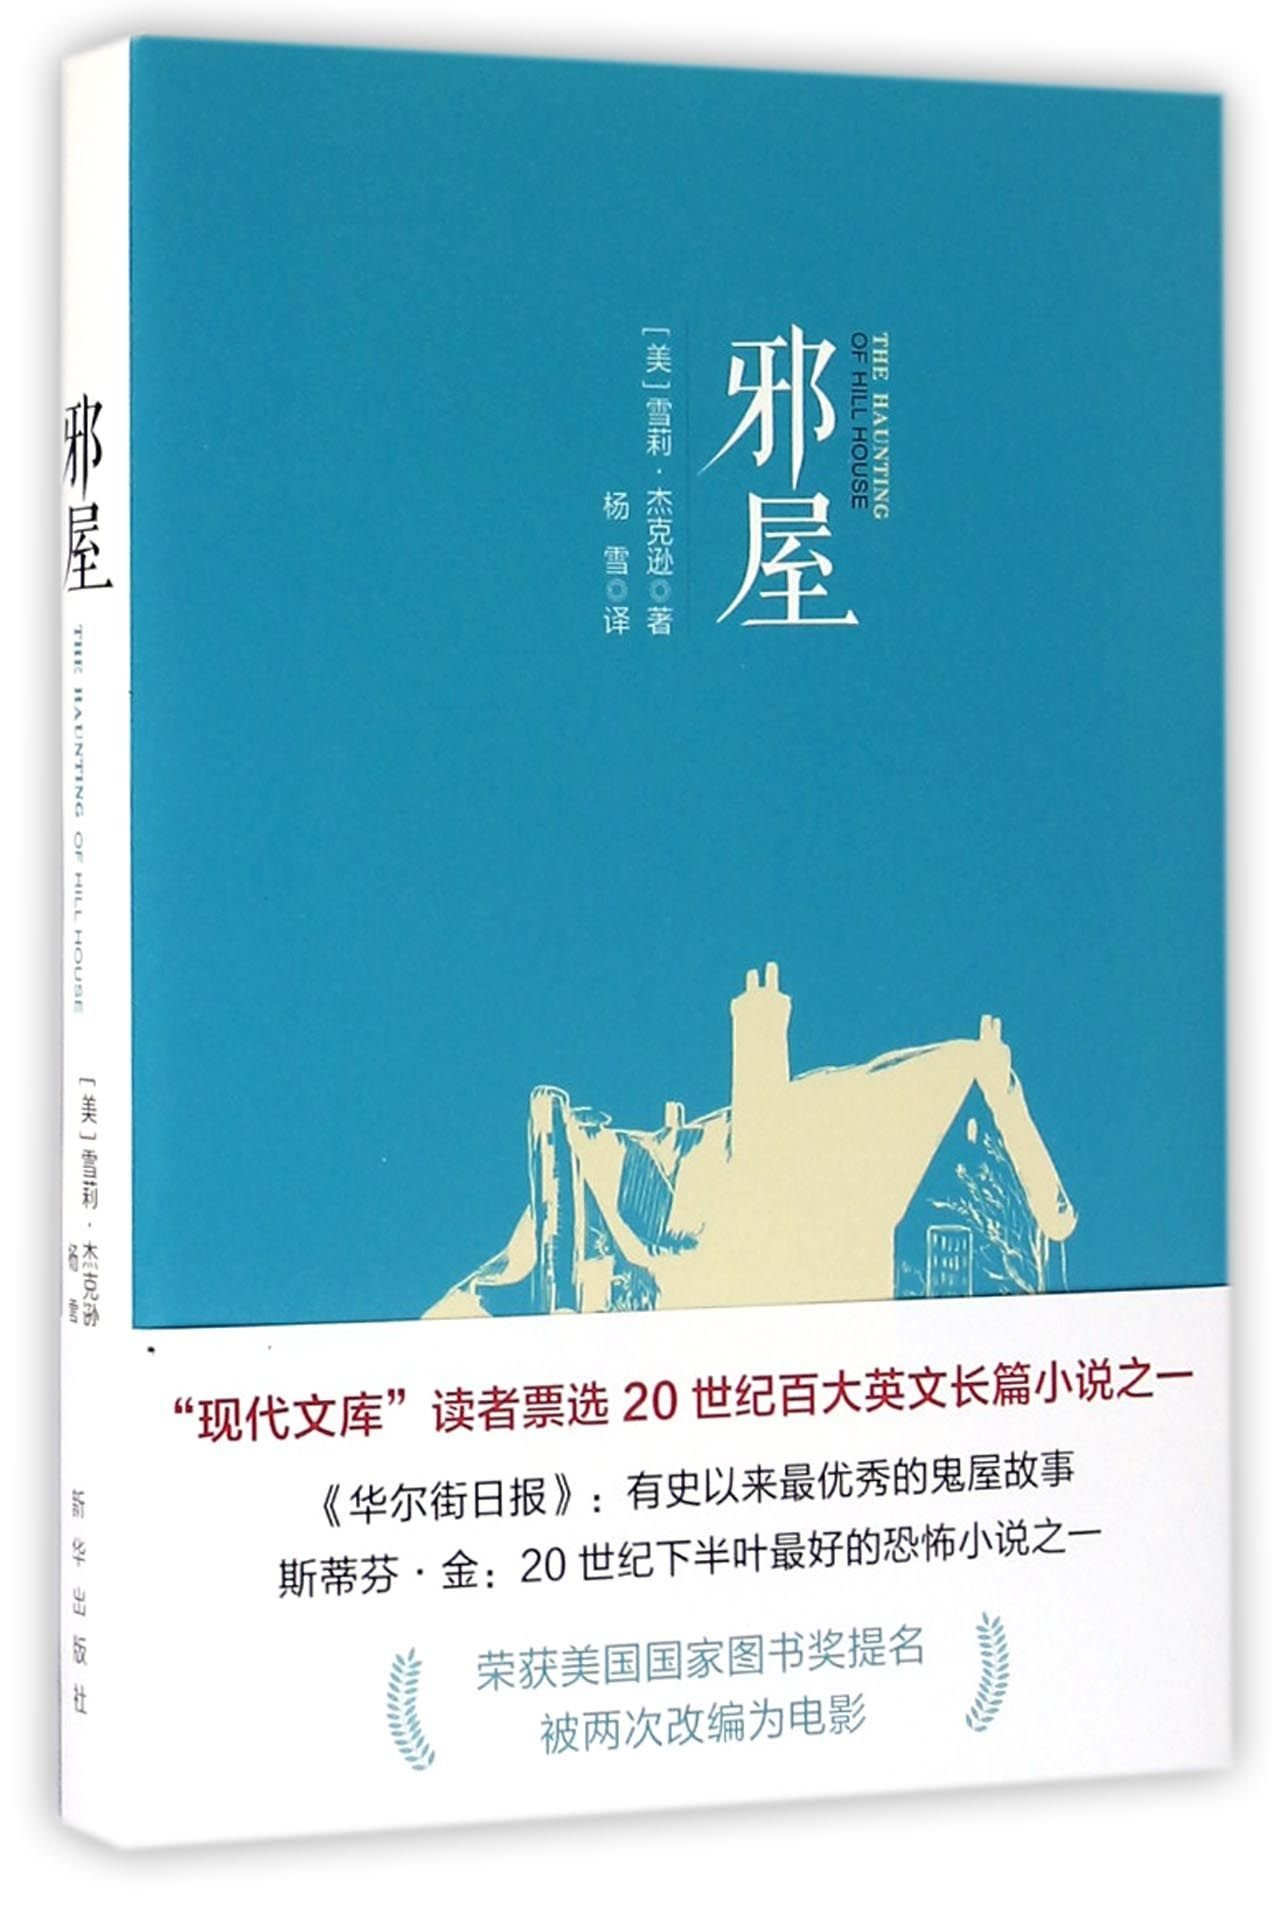 The Haunting Of Hill House Chinese Edition Shirley Jackson 9787516624708 Amazon Com Books